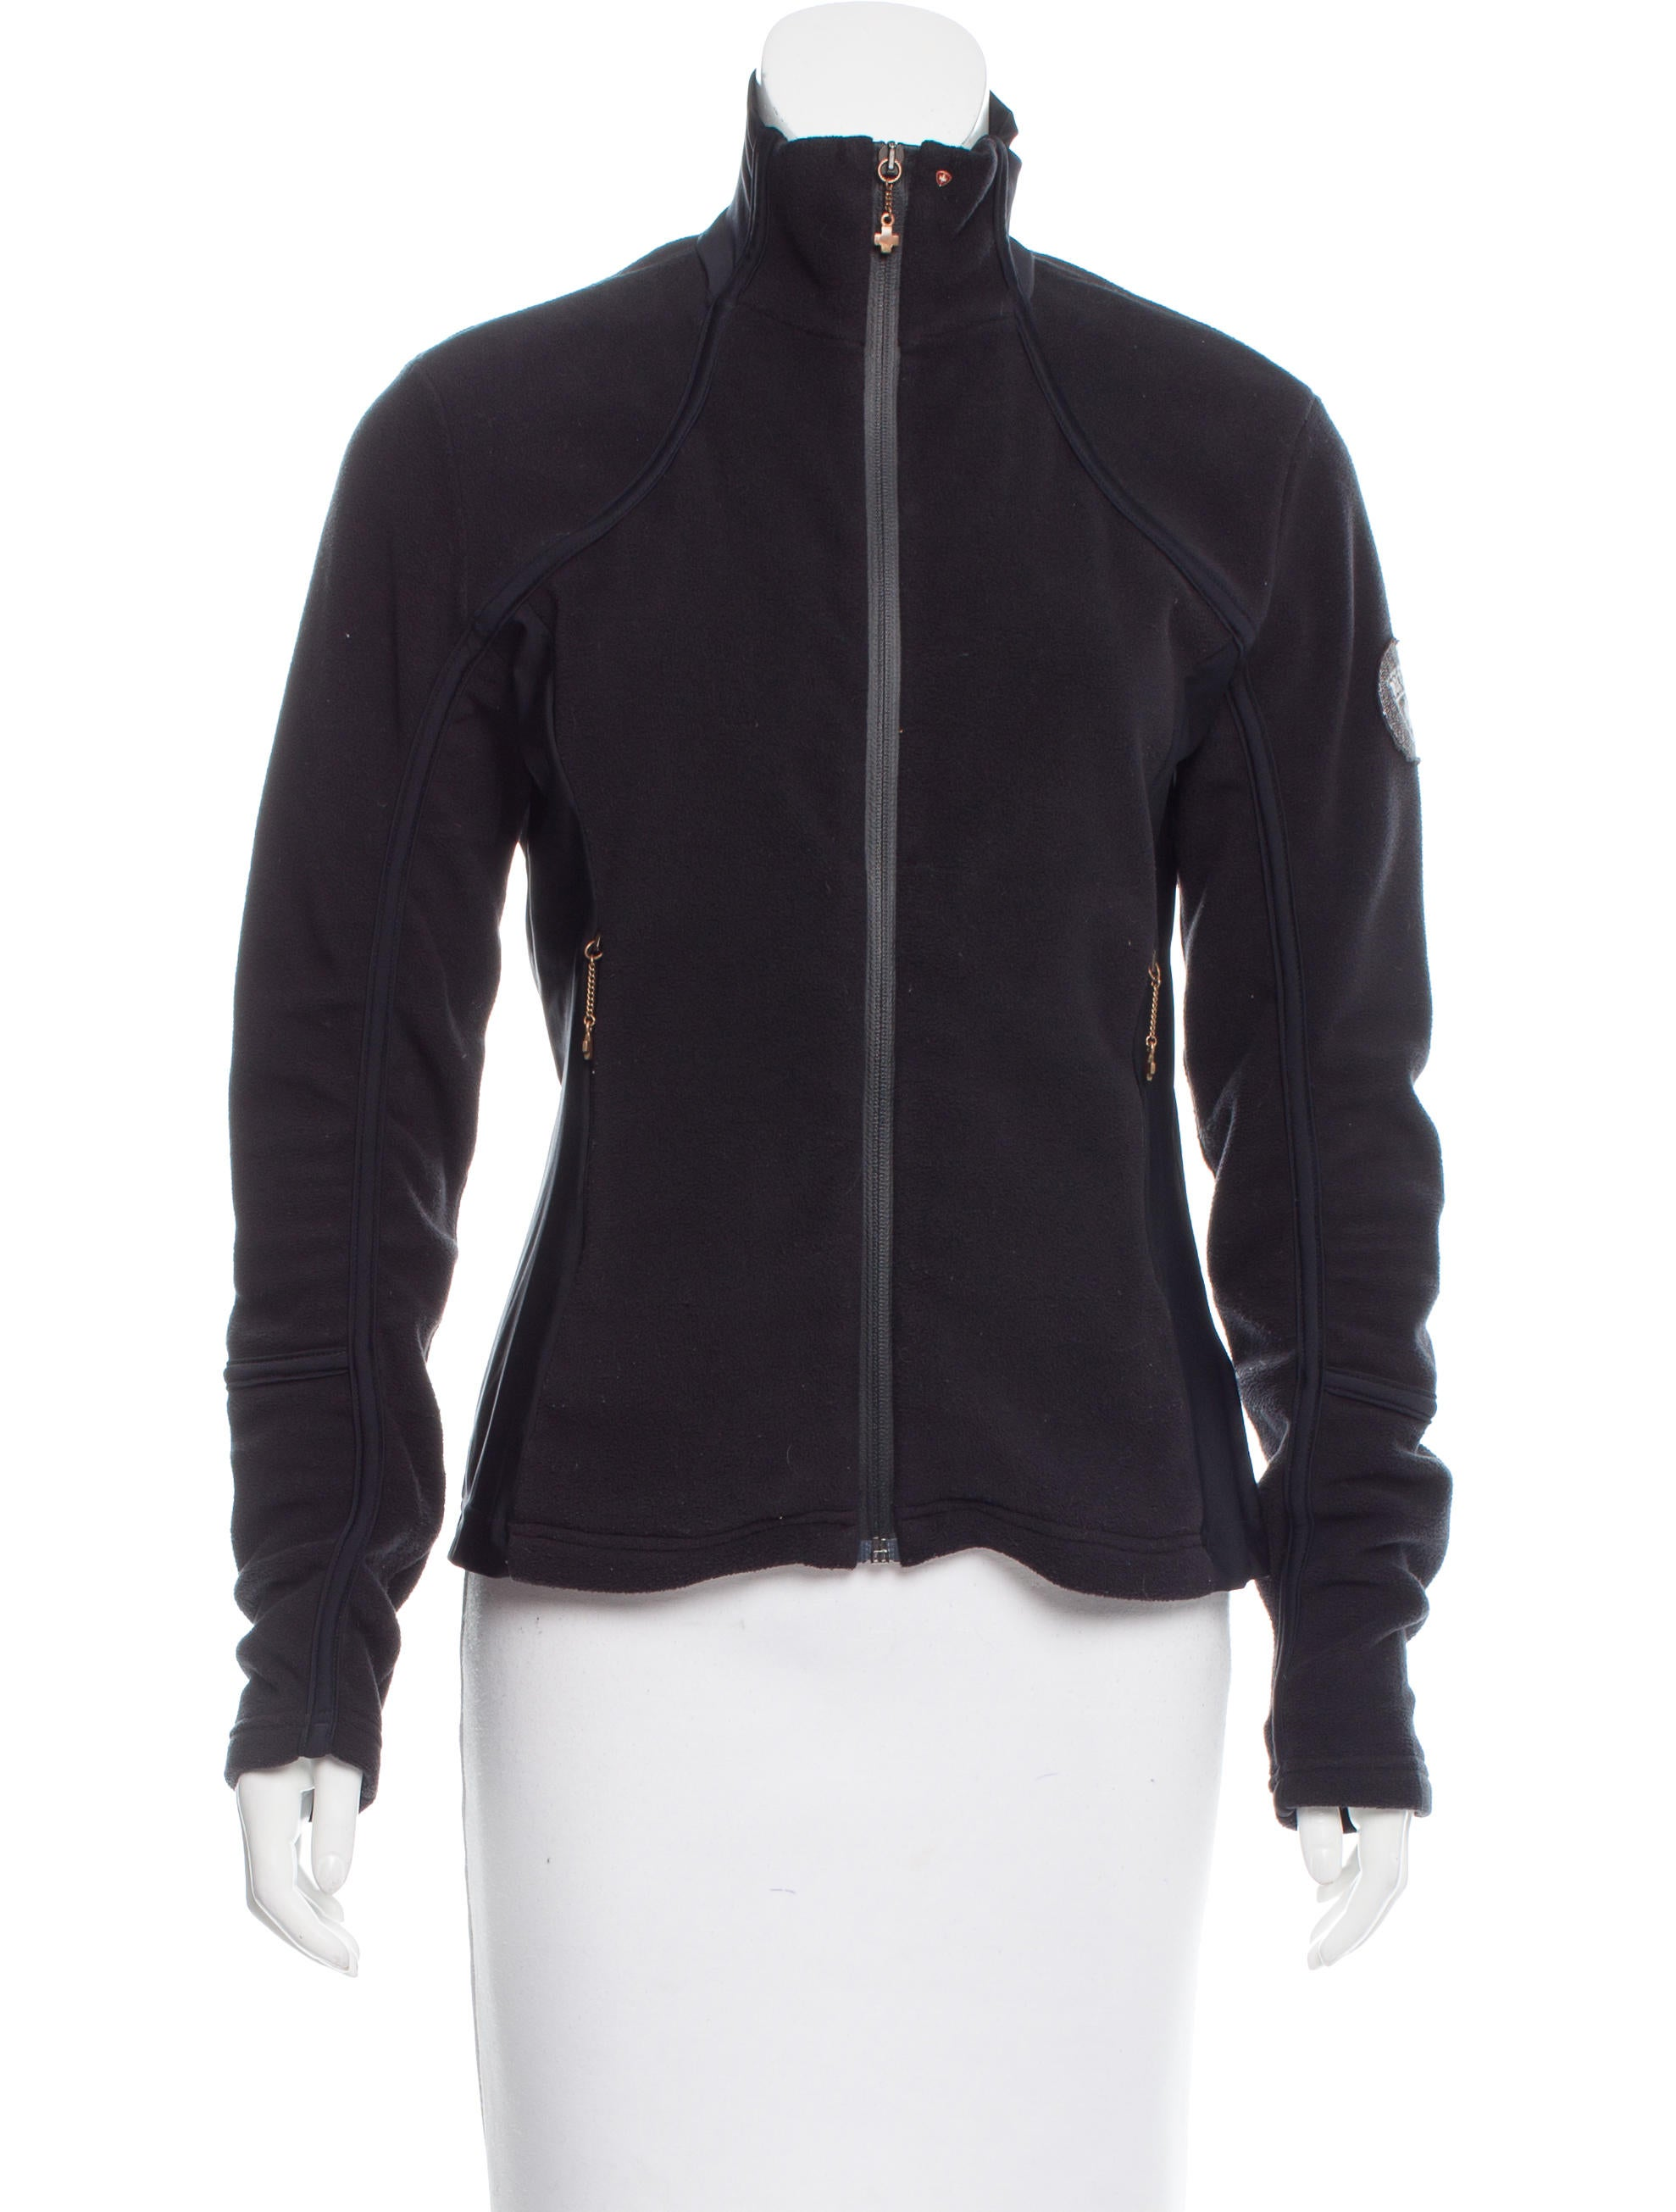 Post Card Casual Sweat Jacket - Clothing